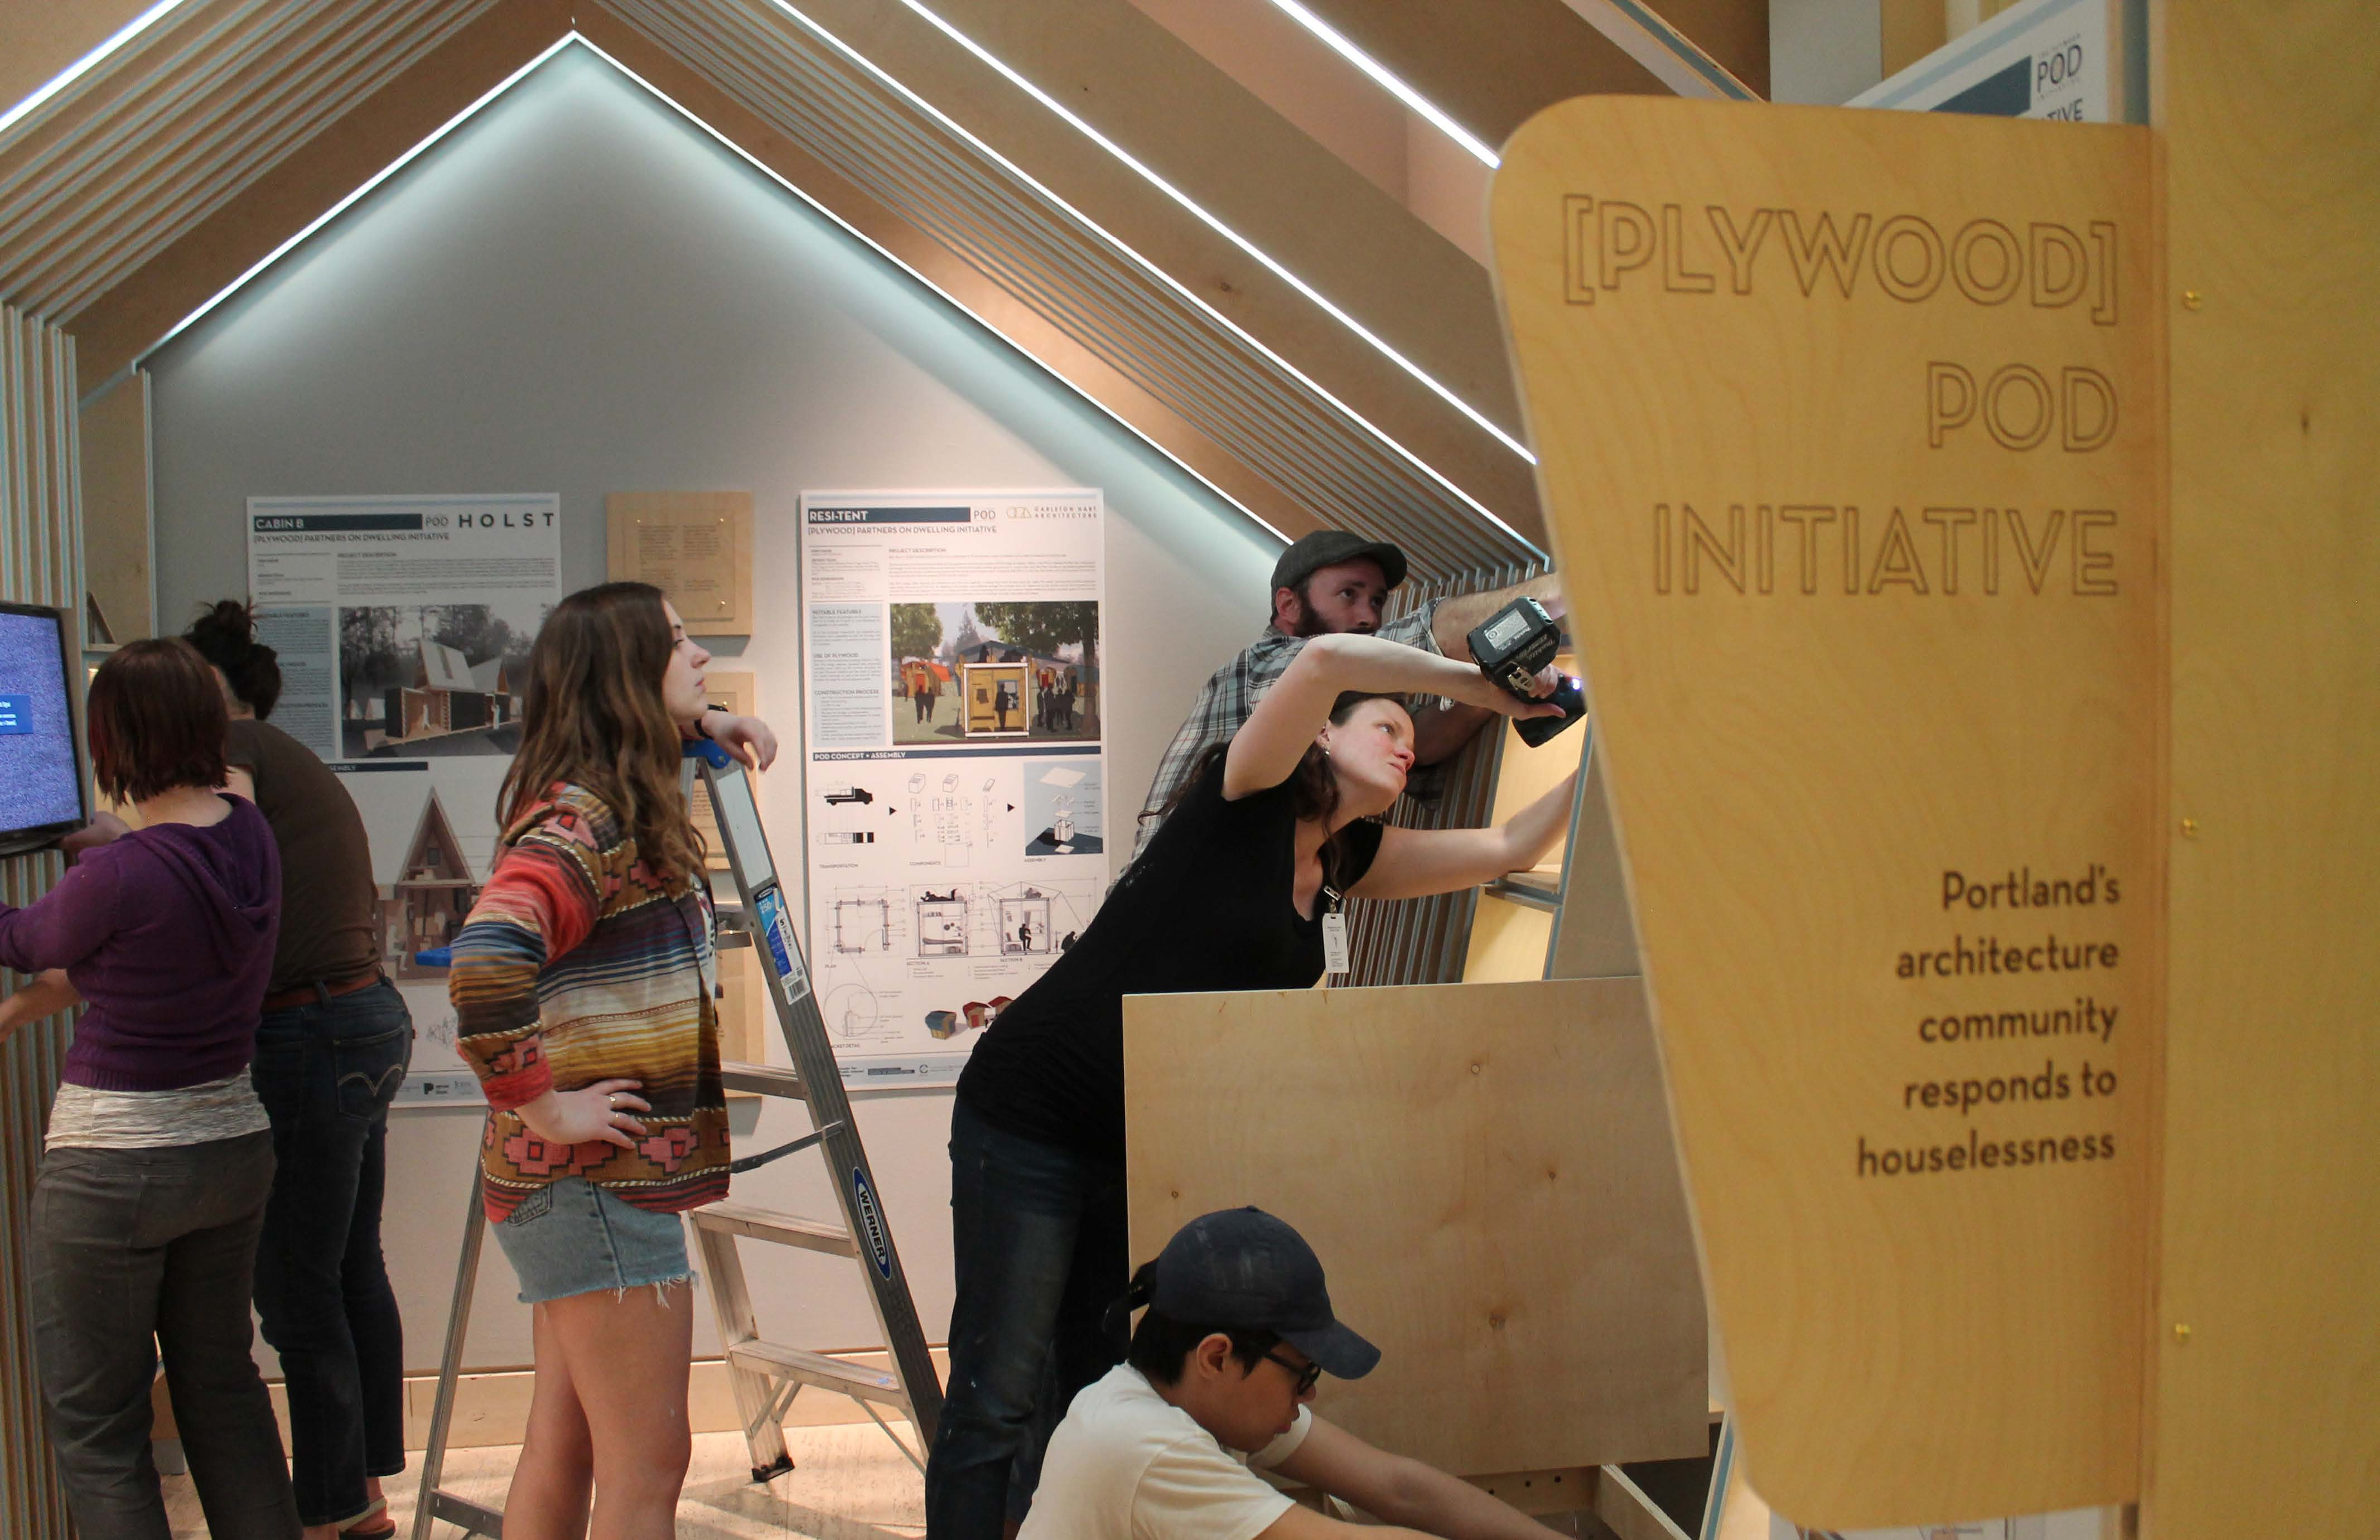 CPID students design and build an exhibit on responding to houselessness with design at the Portland Art Museum